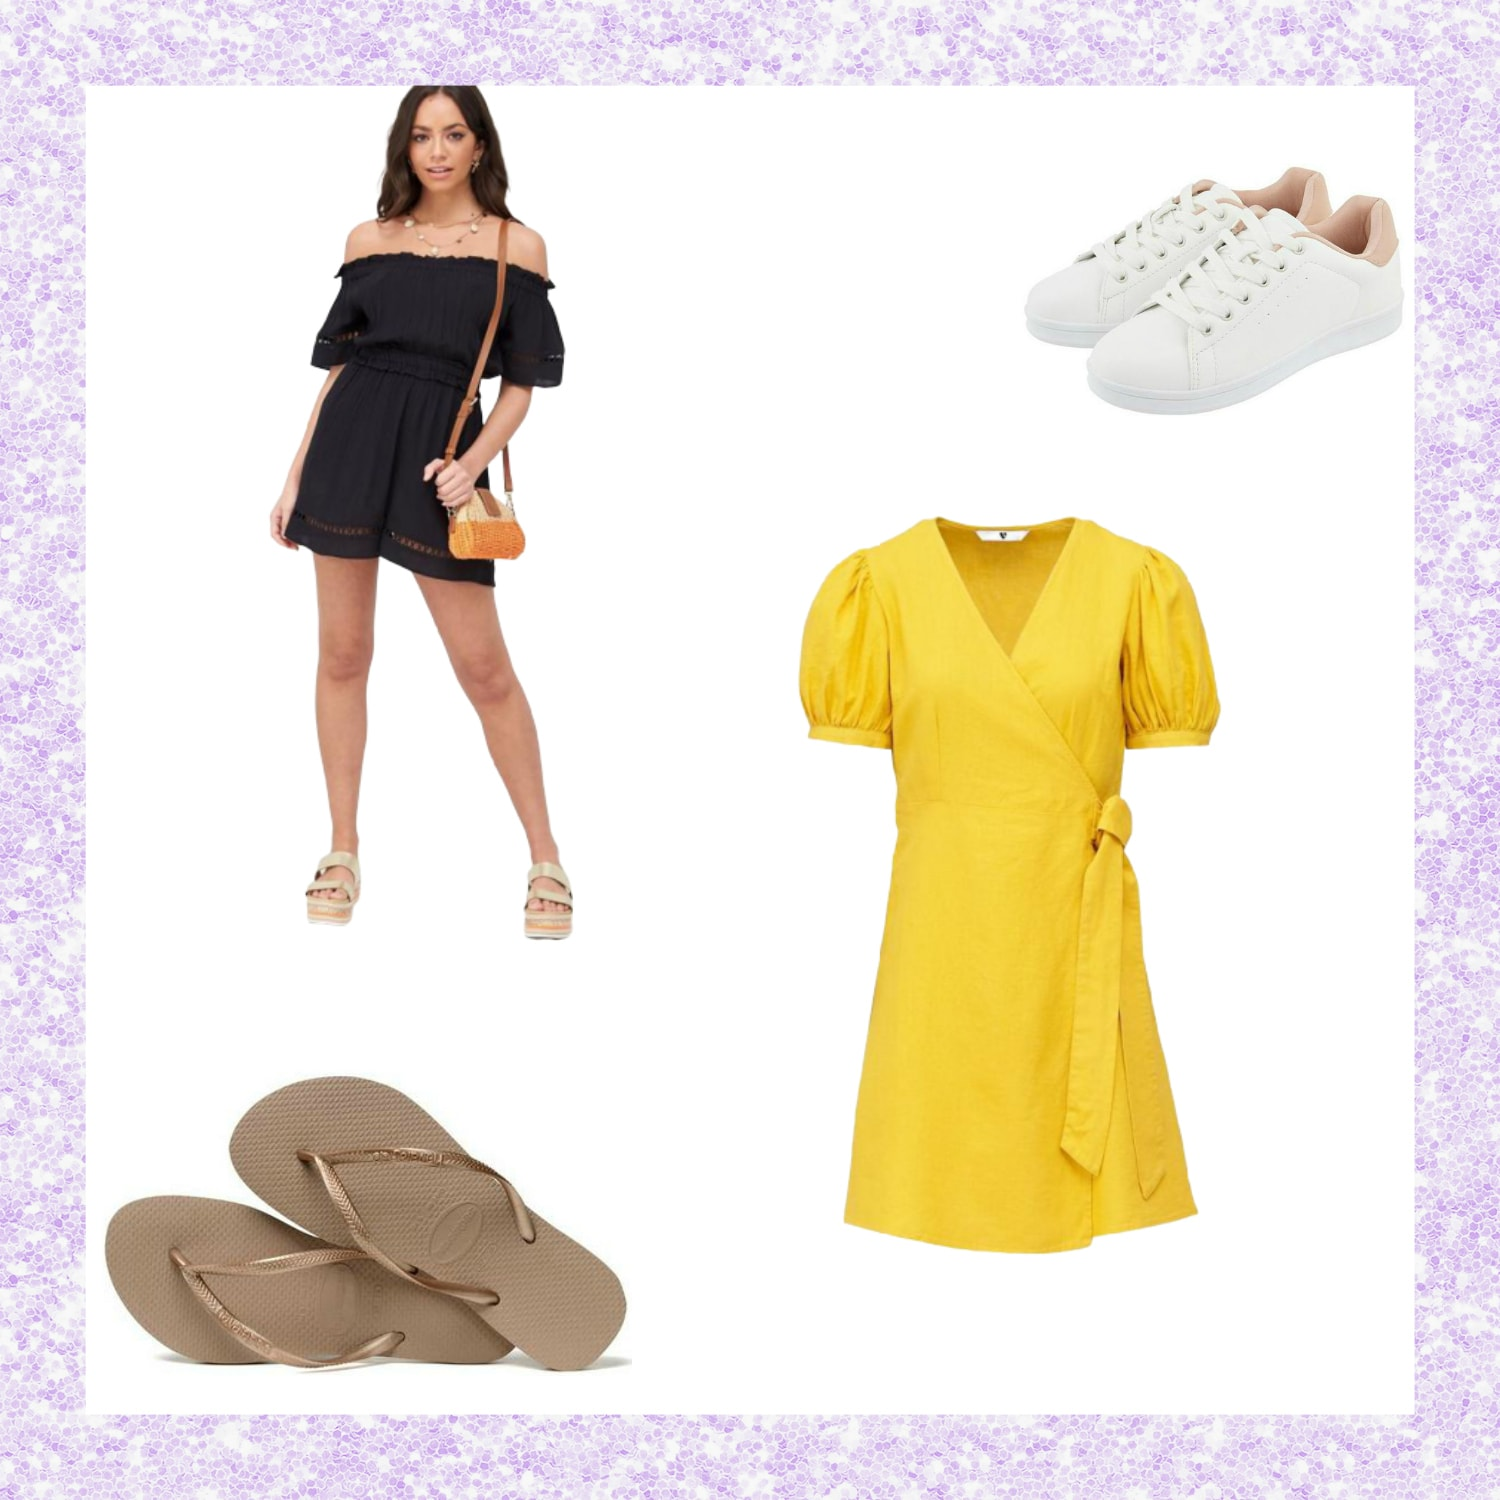 Summer Outfit Inspiration 2020